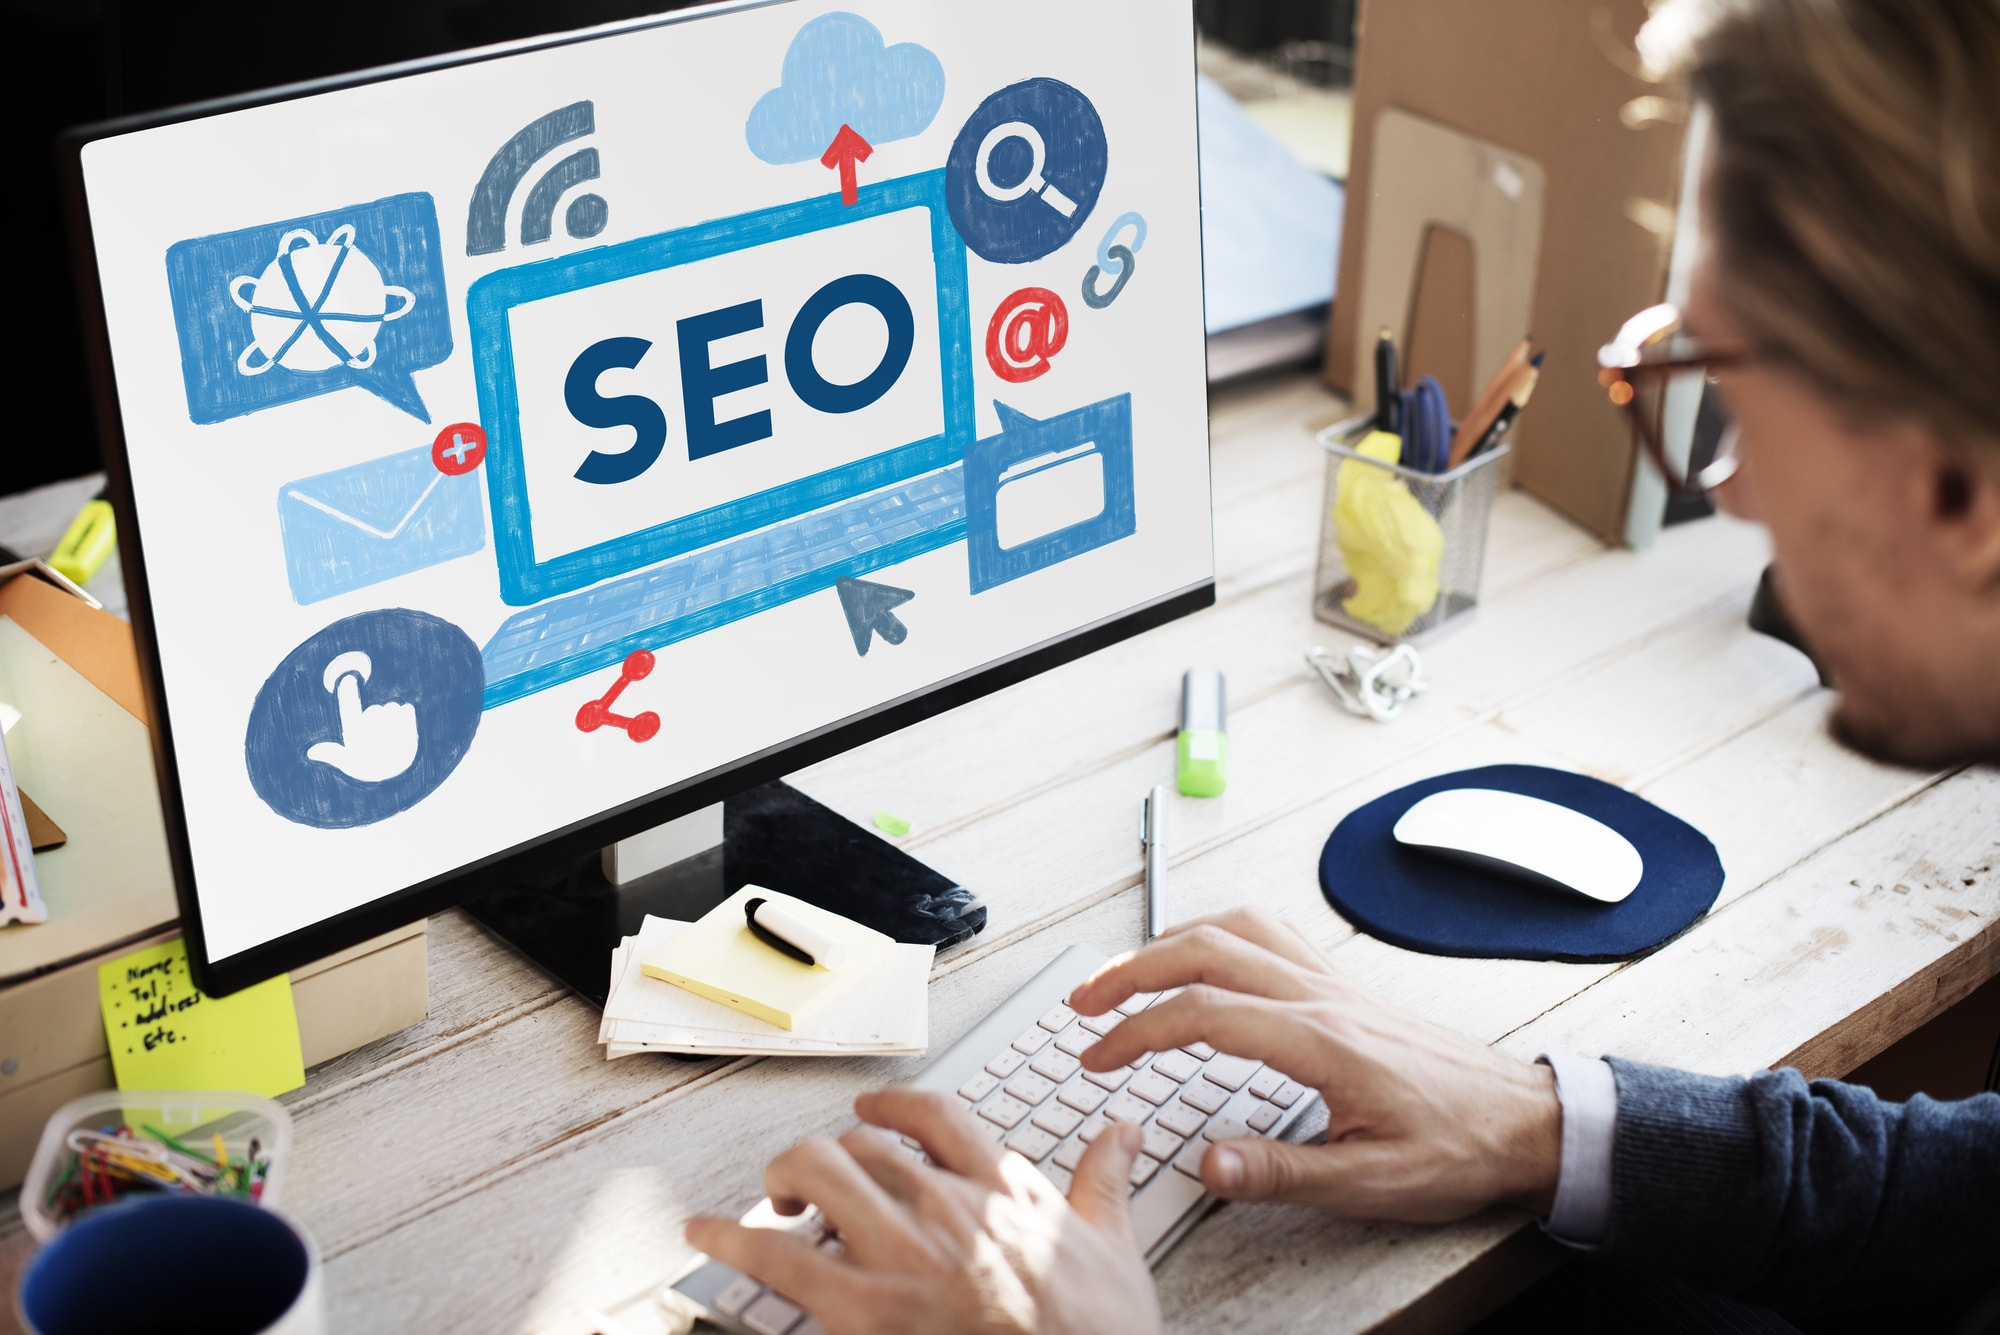 What happens to your business when you stop using SEO?